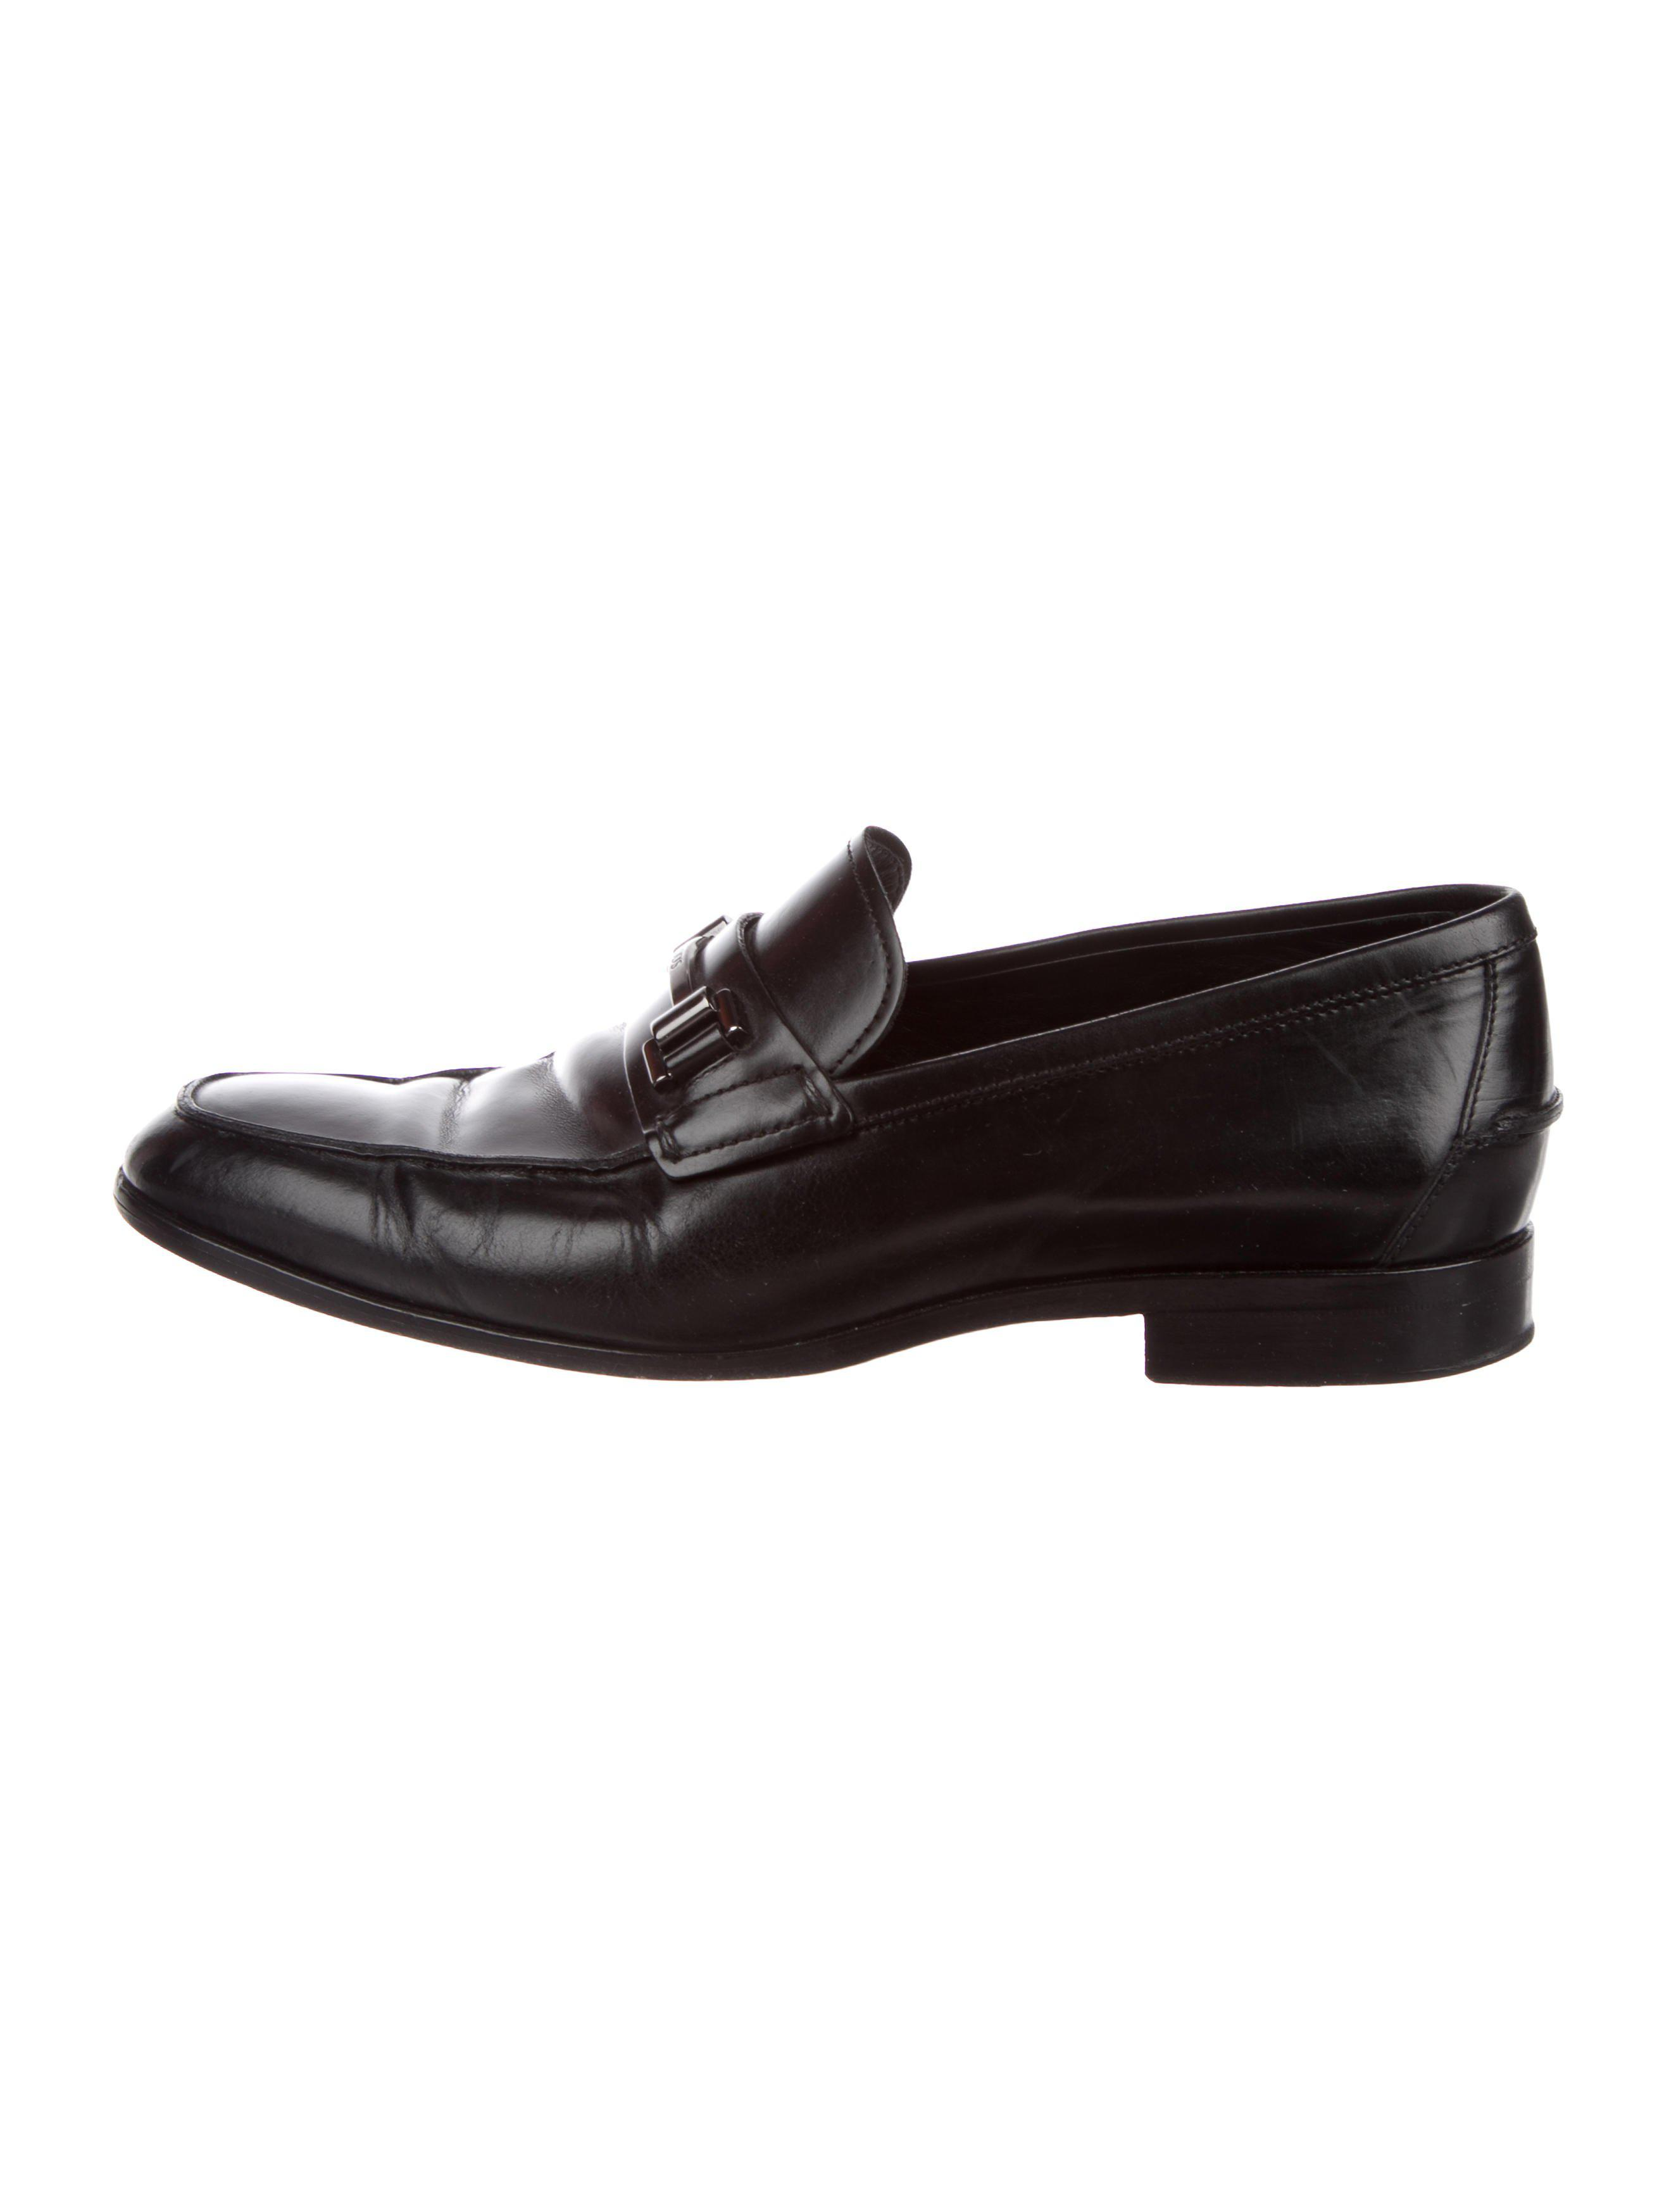 185d818f05d Lyst - Tod S Leather Horsebit Loafers in Black for Men